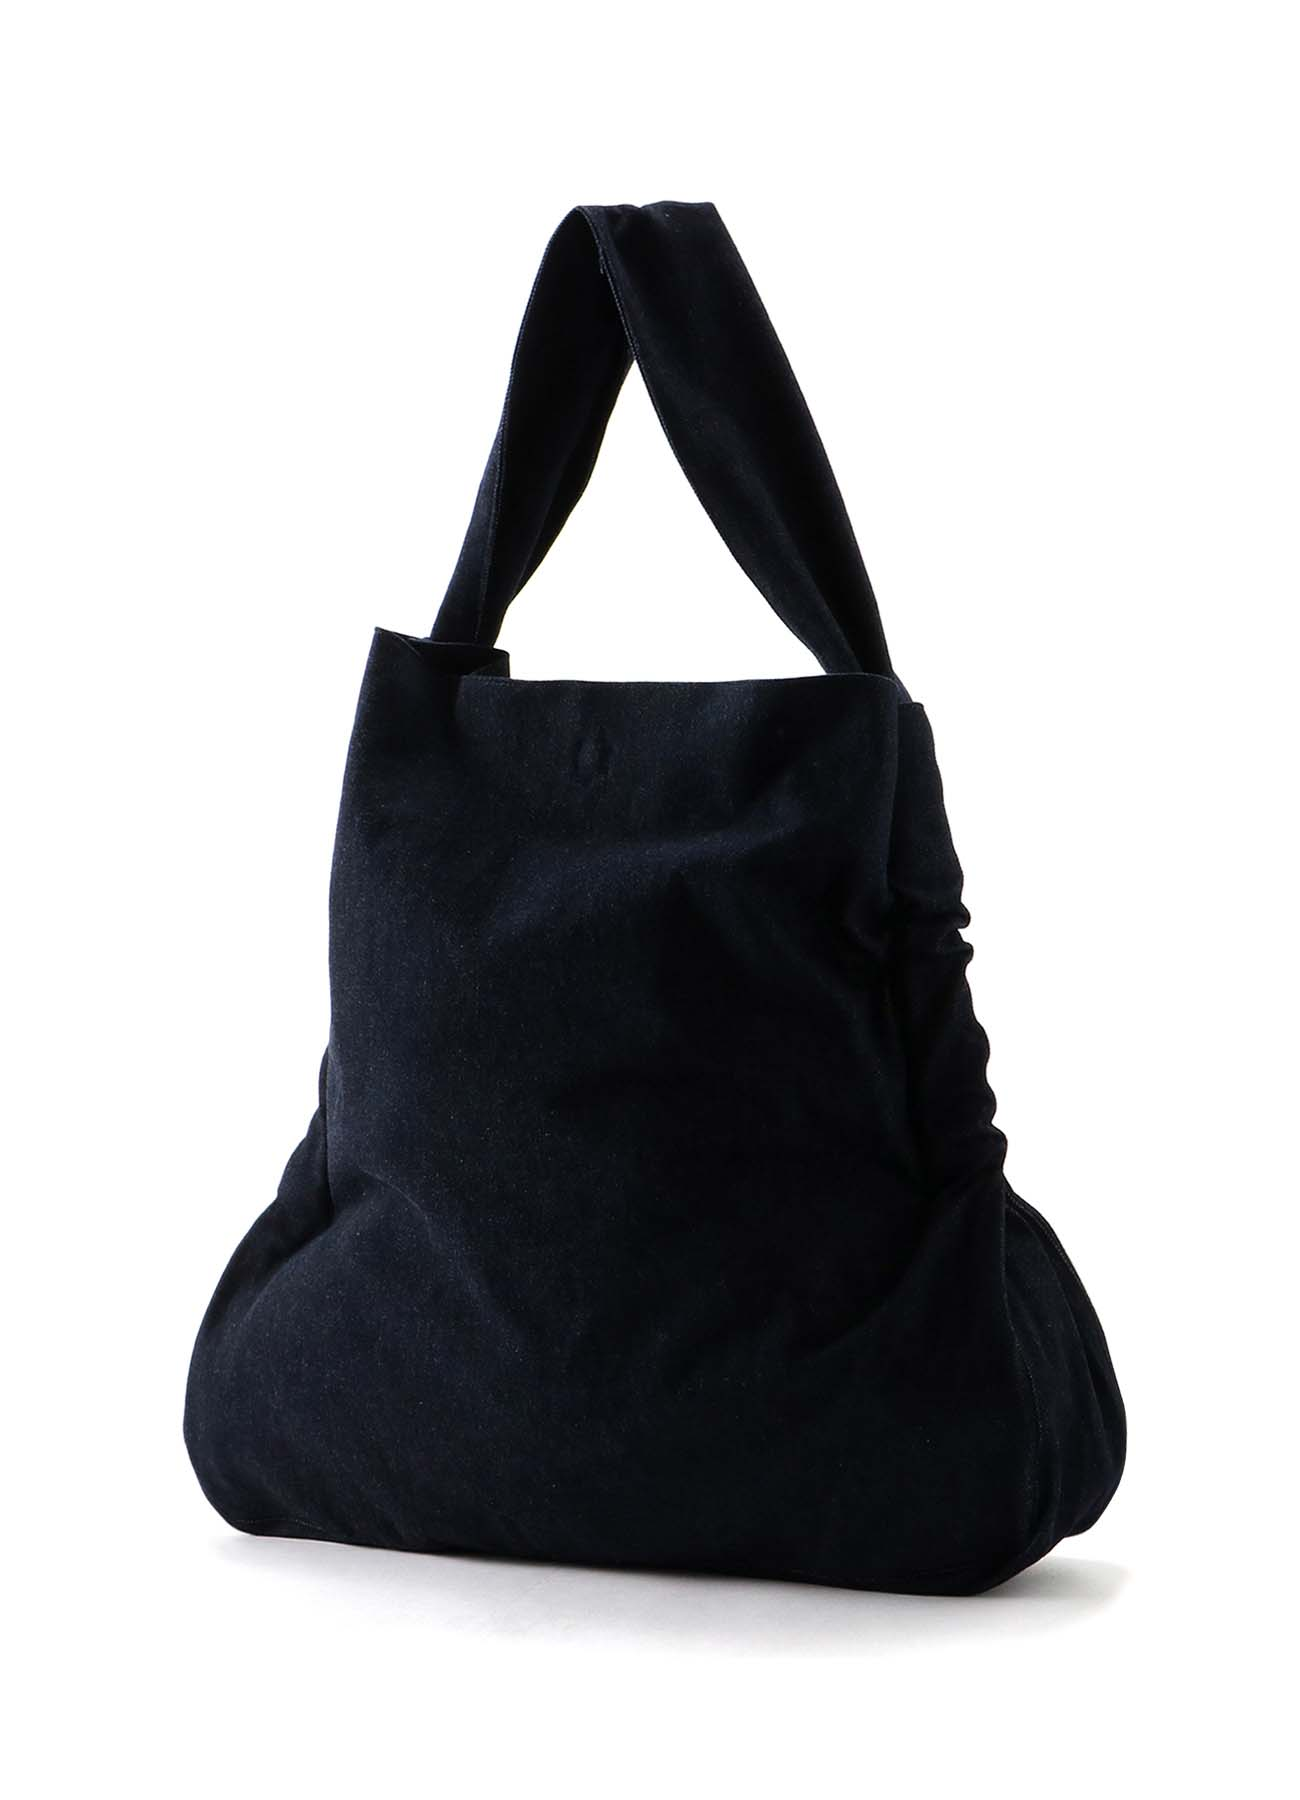 10oz DENIM GATHER BAG